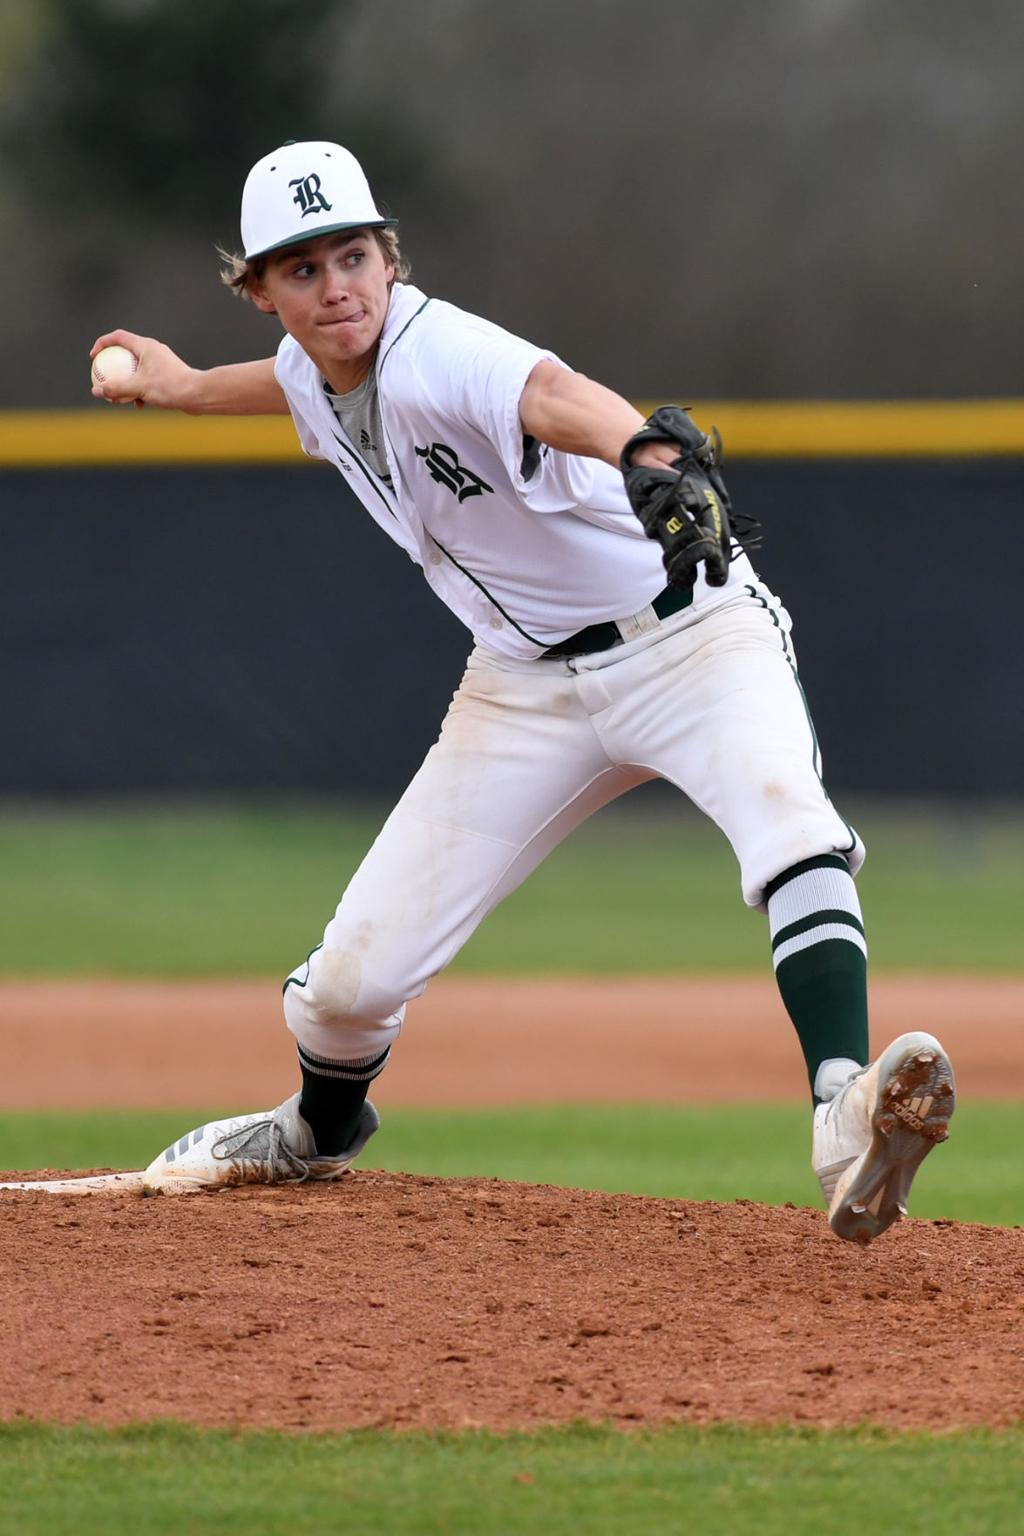 Rudder Baseball Team Loses To Magnolia West In District 19 5a Opener